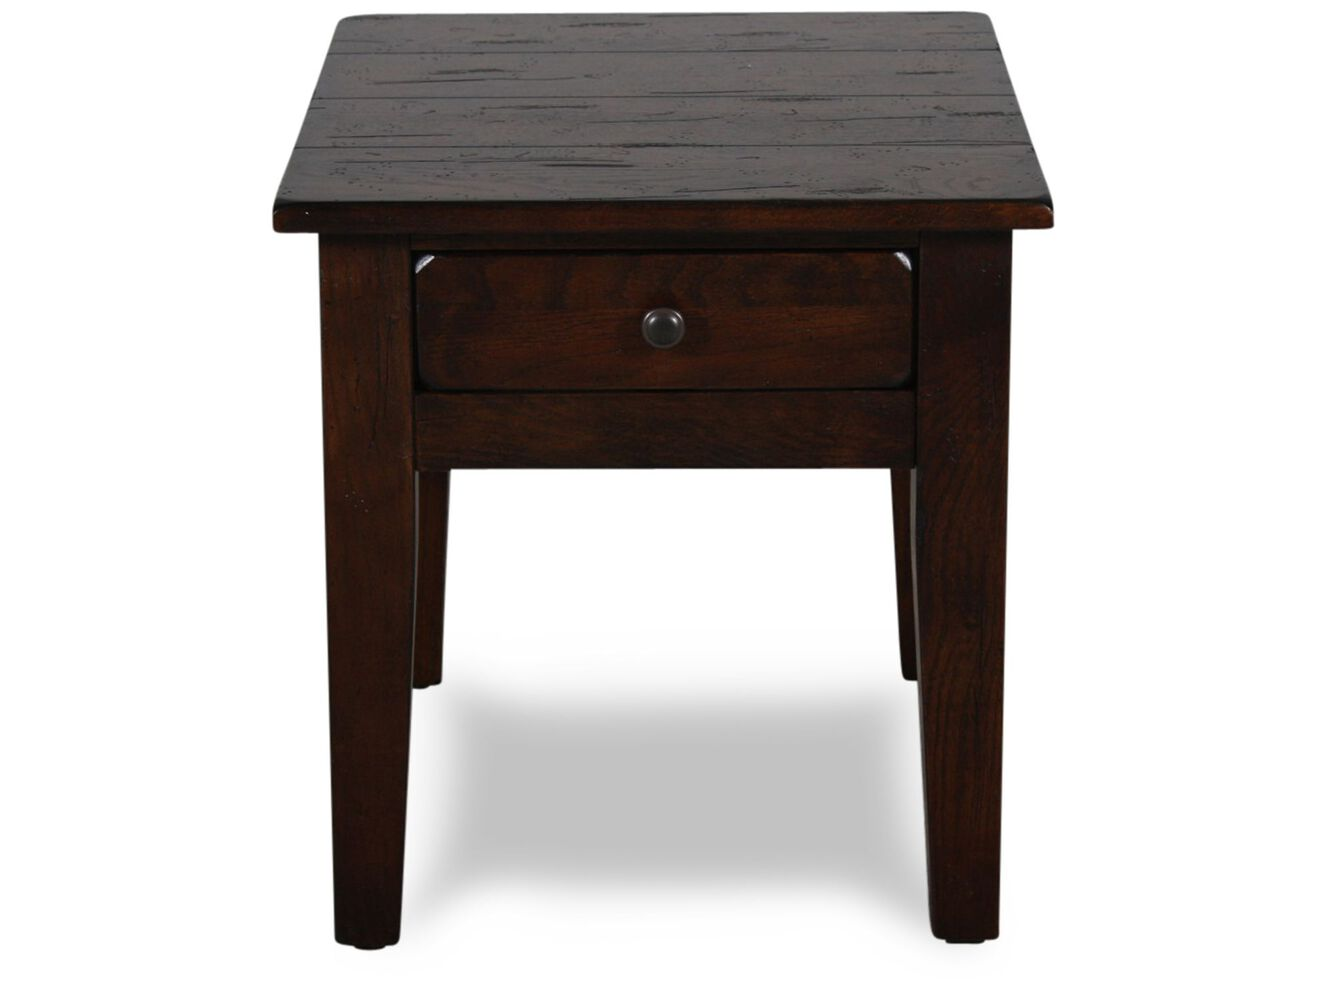 Textured Square Country End Table In Dark Oak